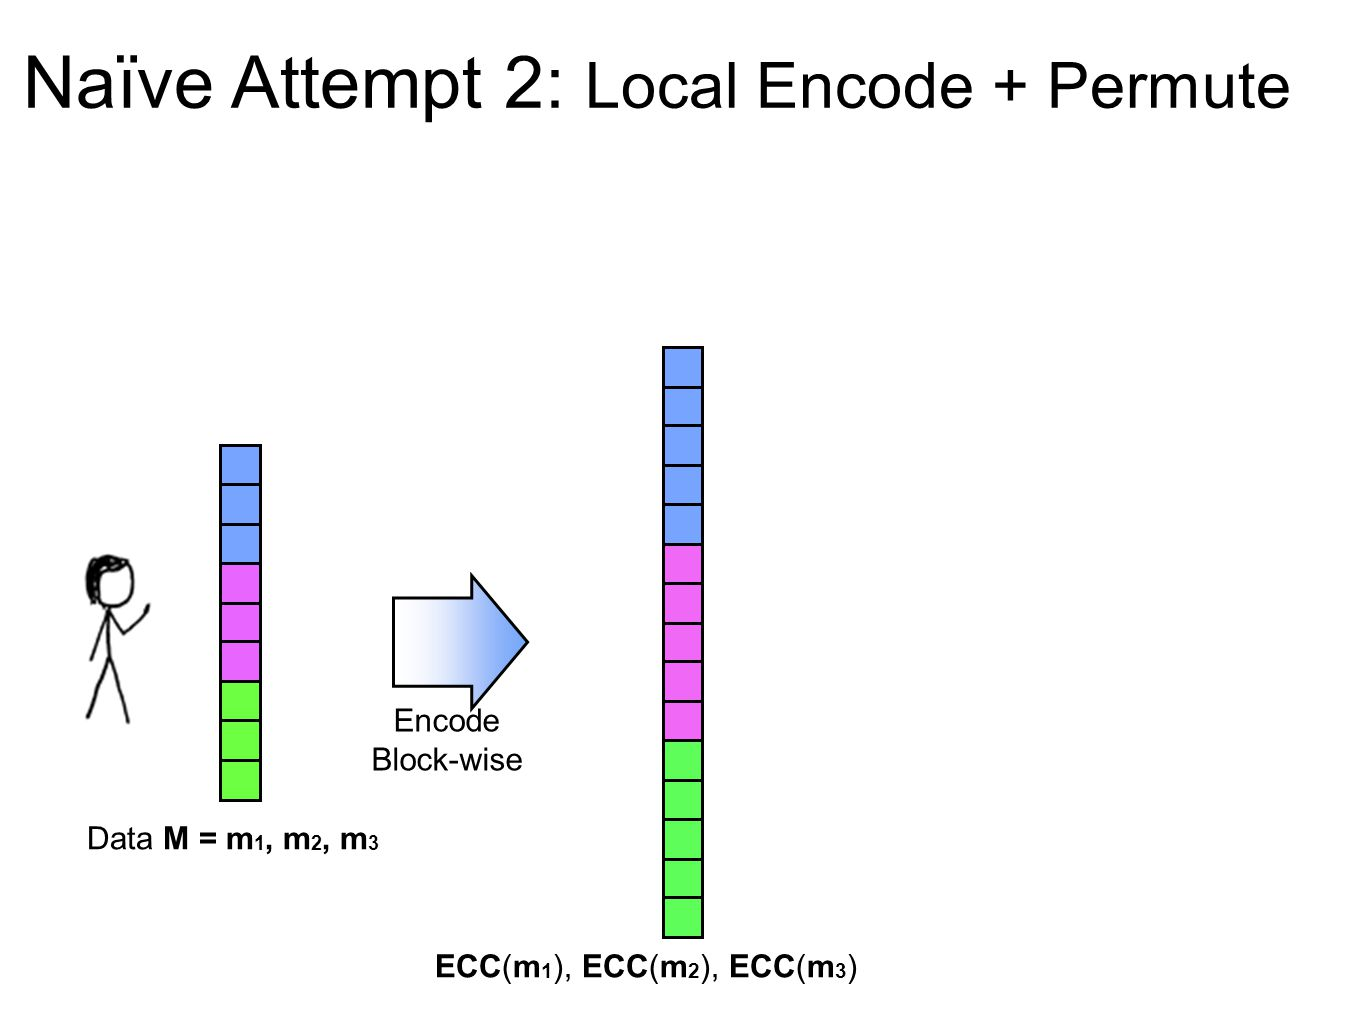 Naïve Attempt 2: Local Encode + Permute